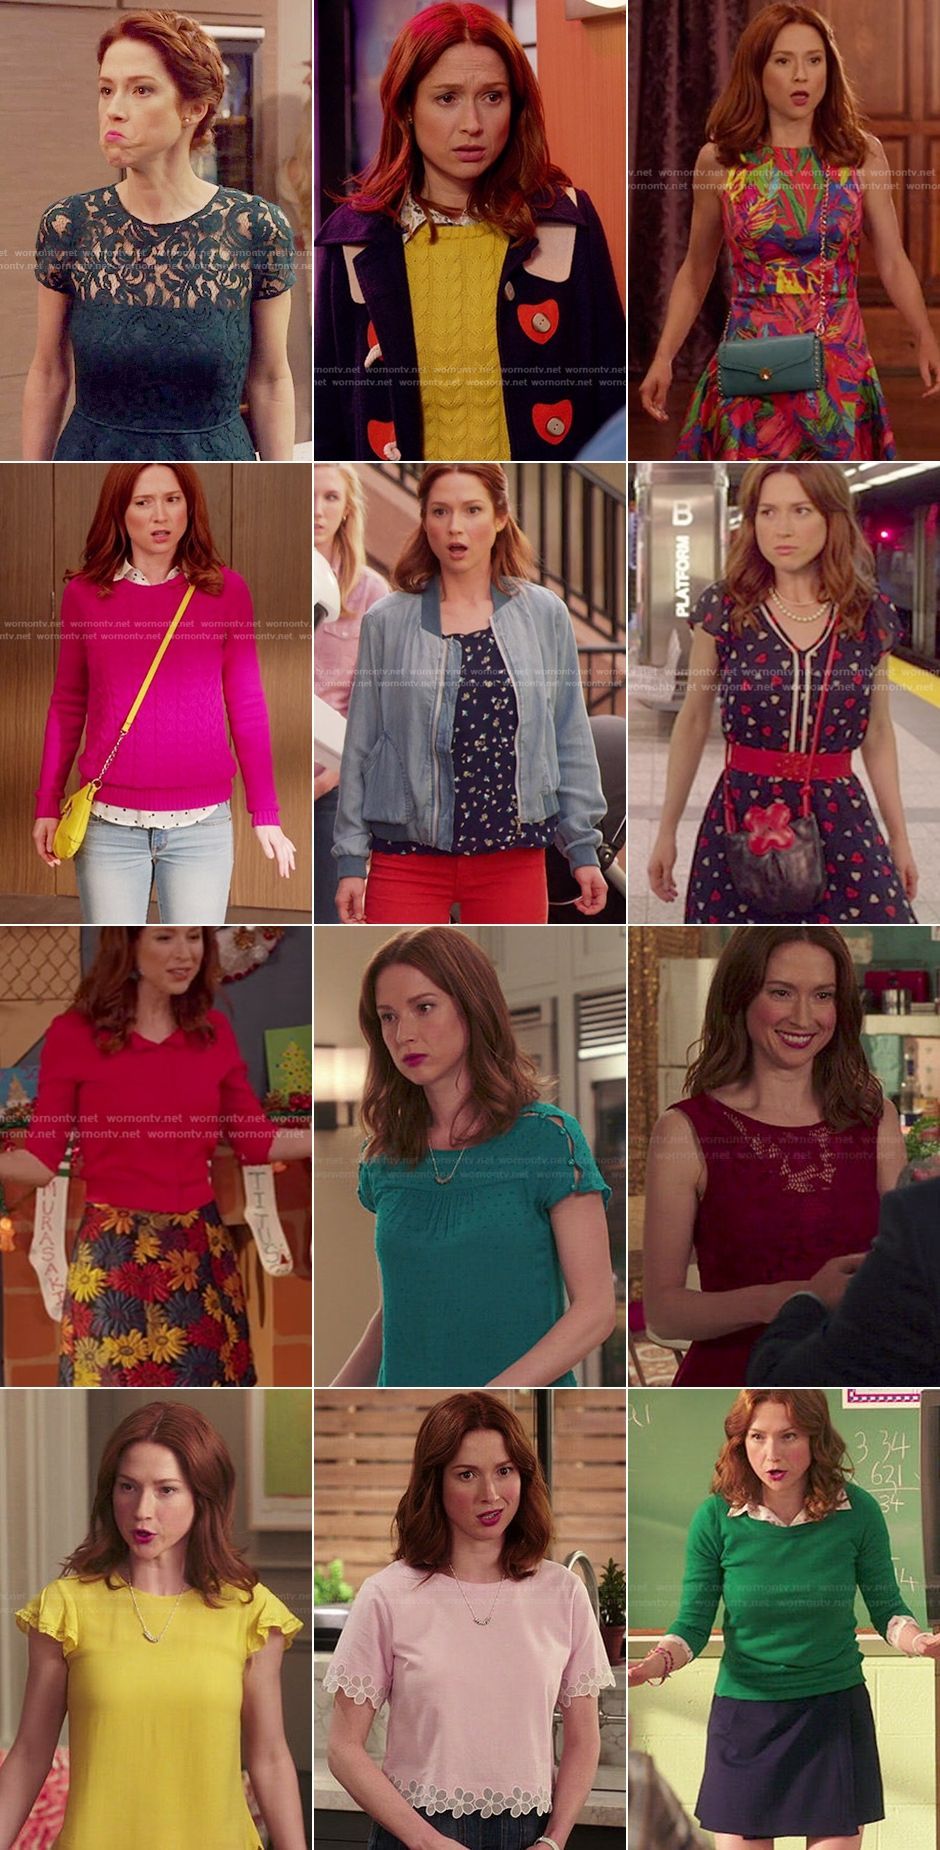 kimmy-schmidt- outfits